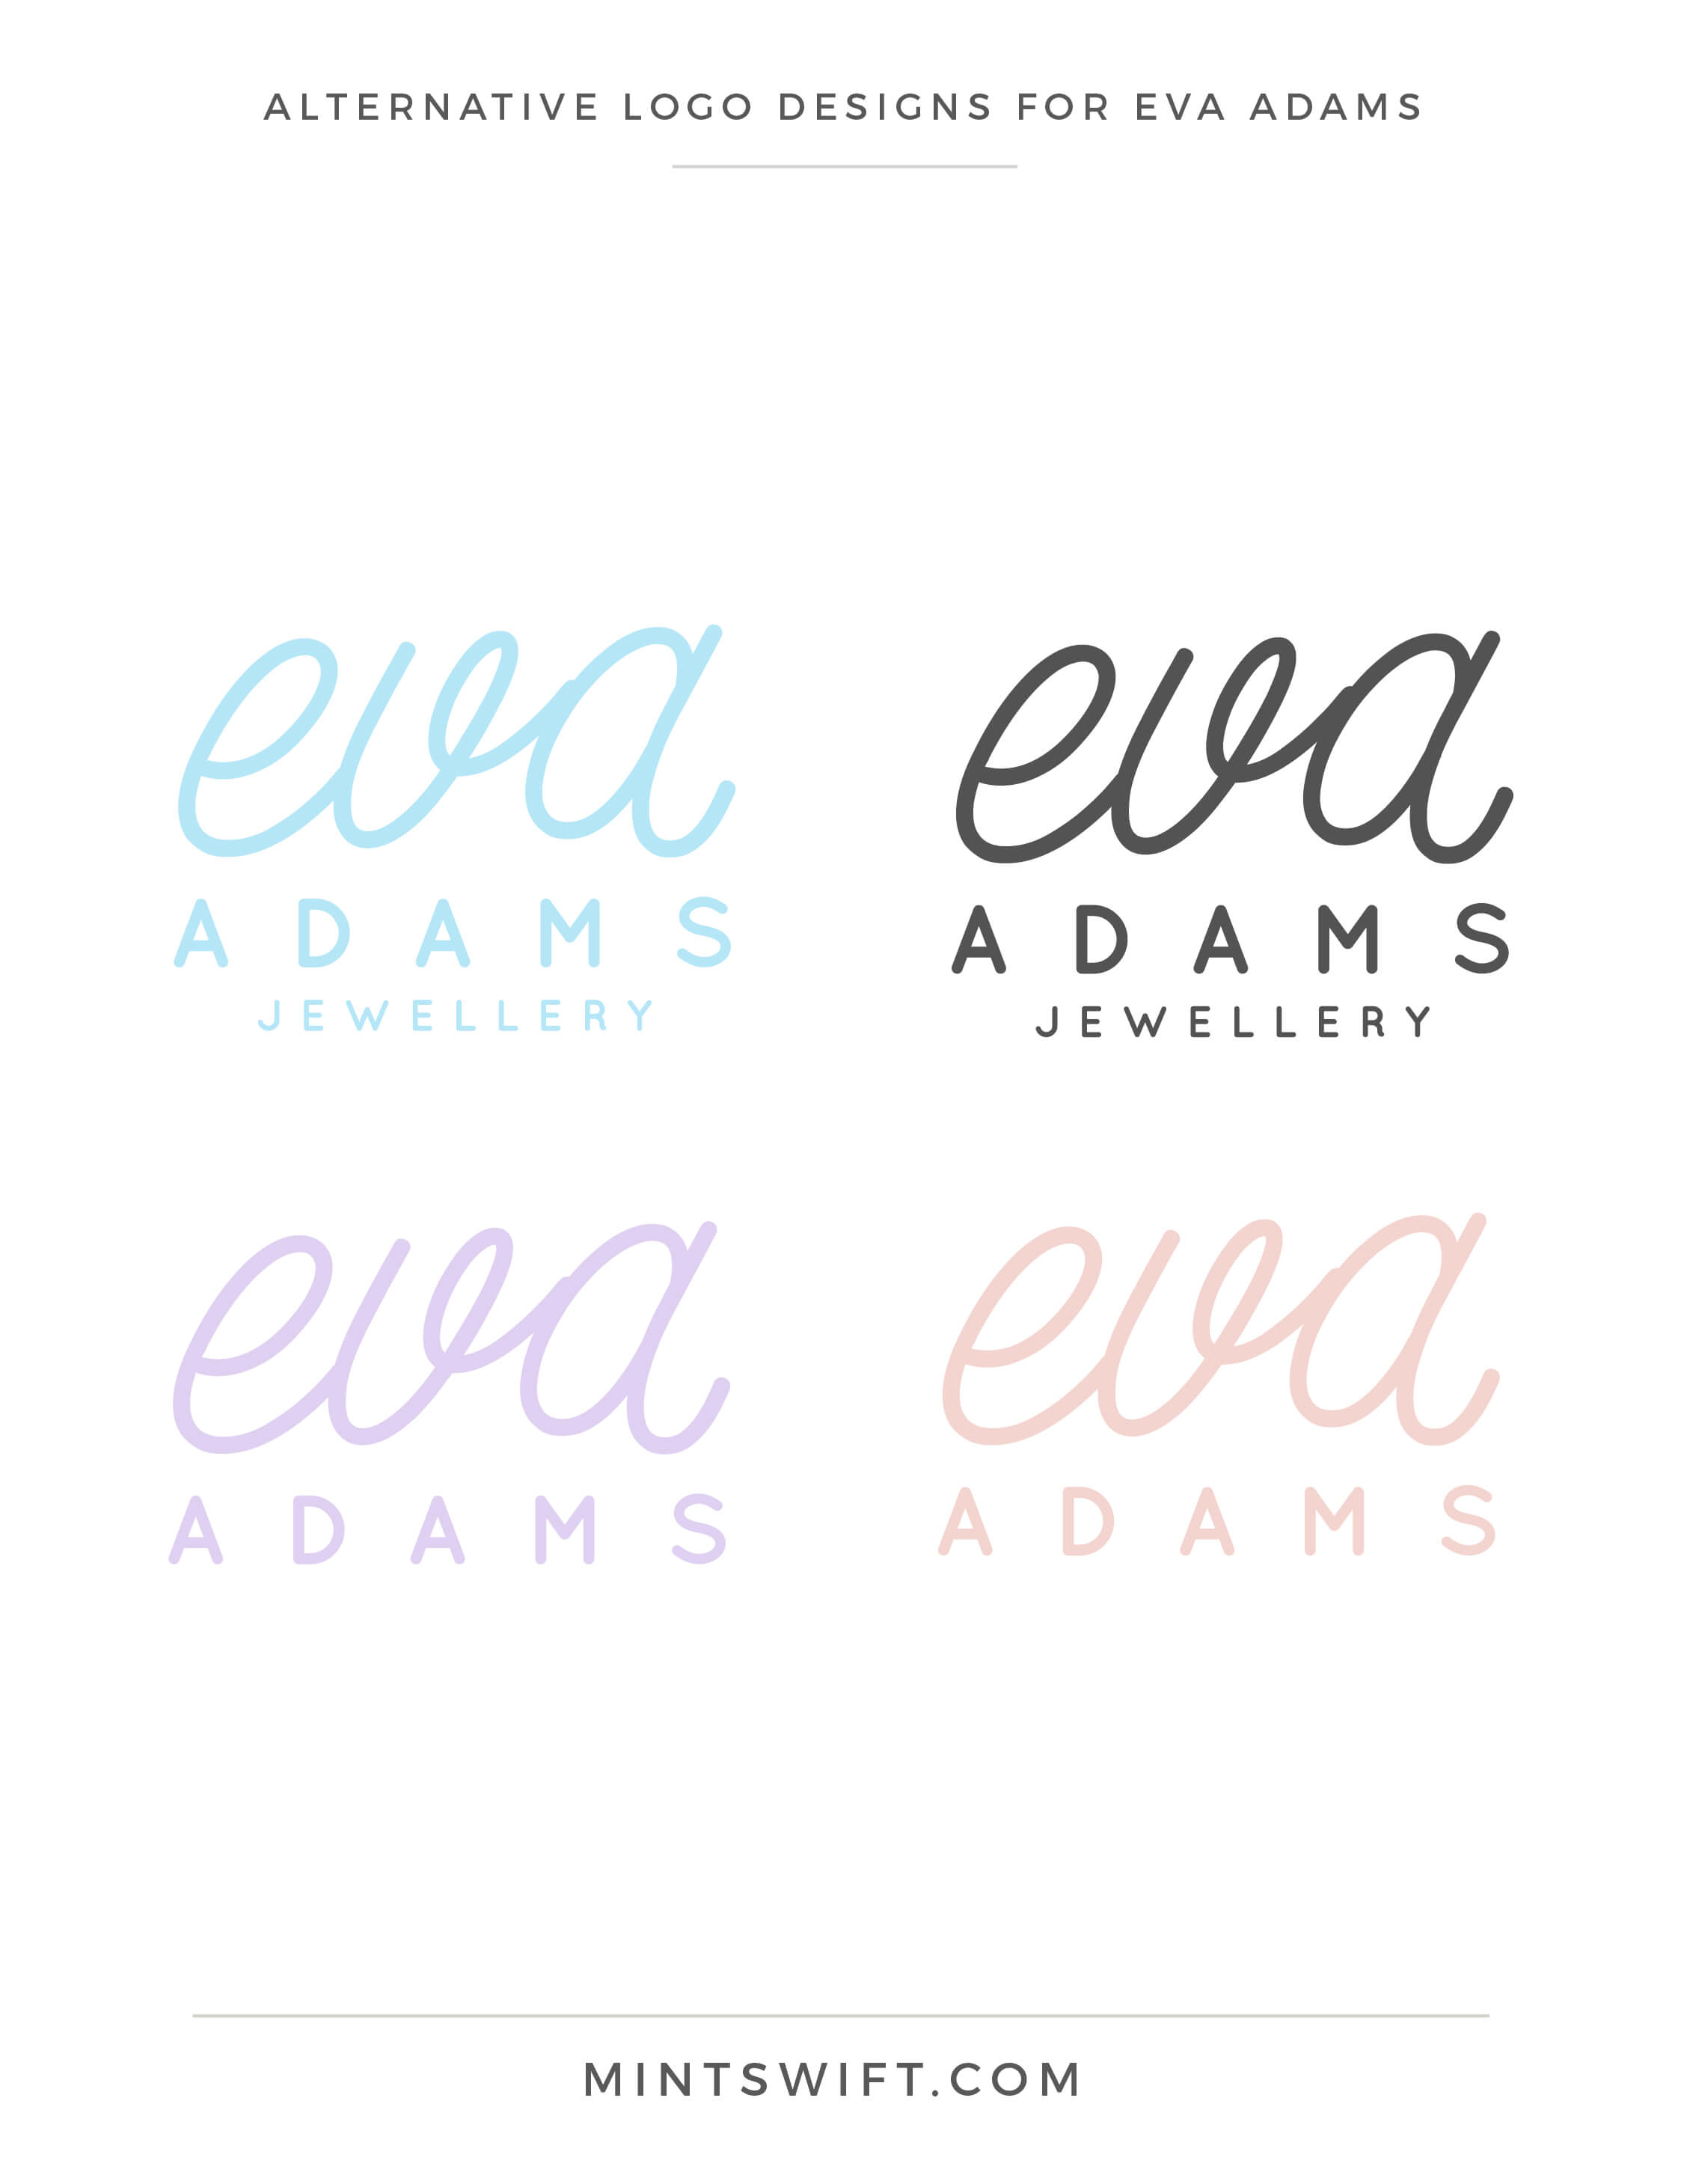 Eva Adams - Alternative logo designs - MintSwift